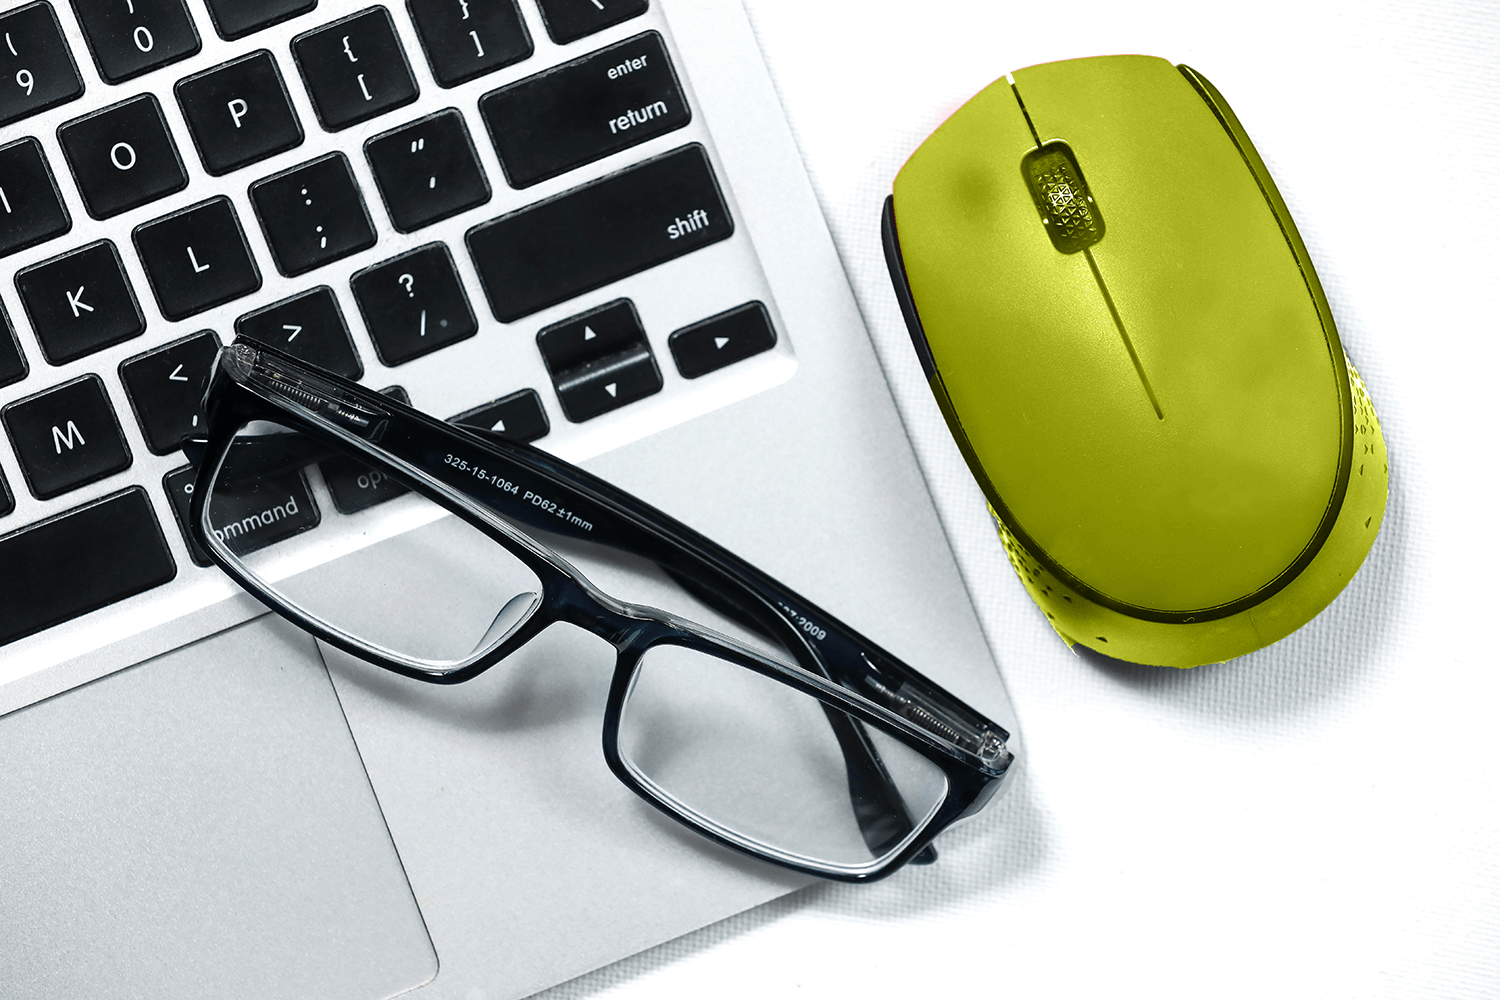 Photo of a laptop keyboard and mouse